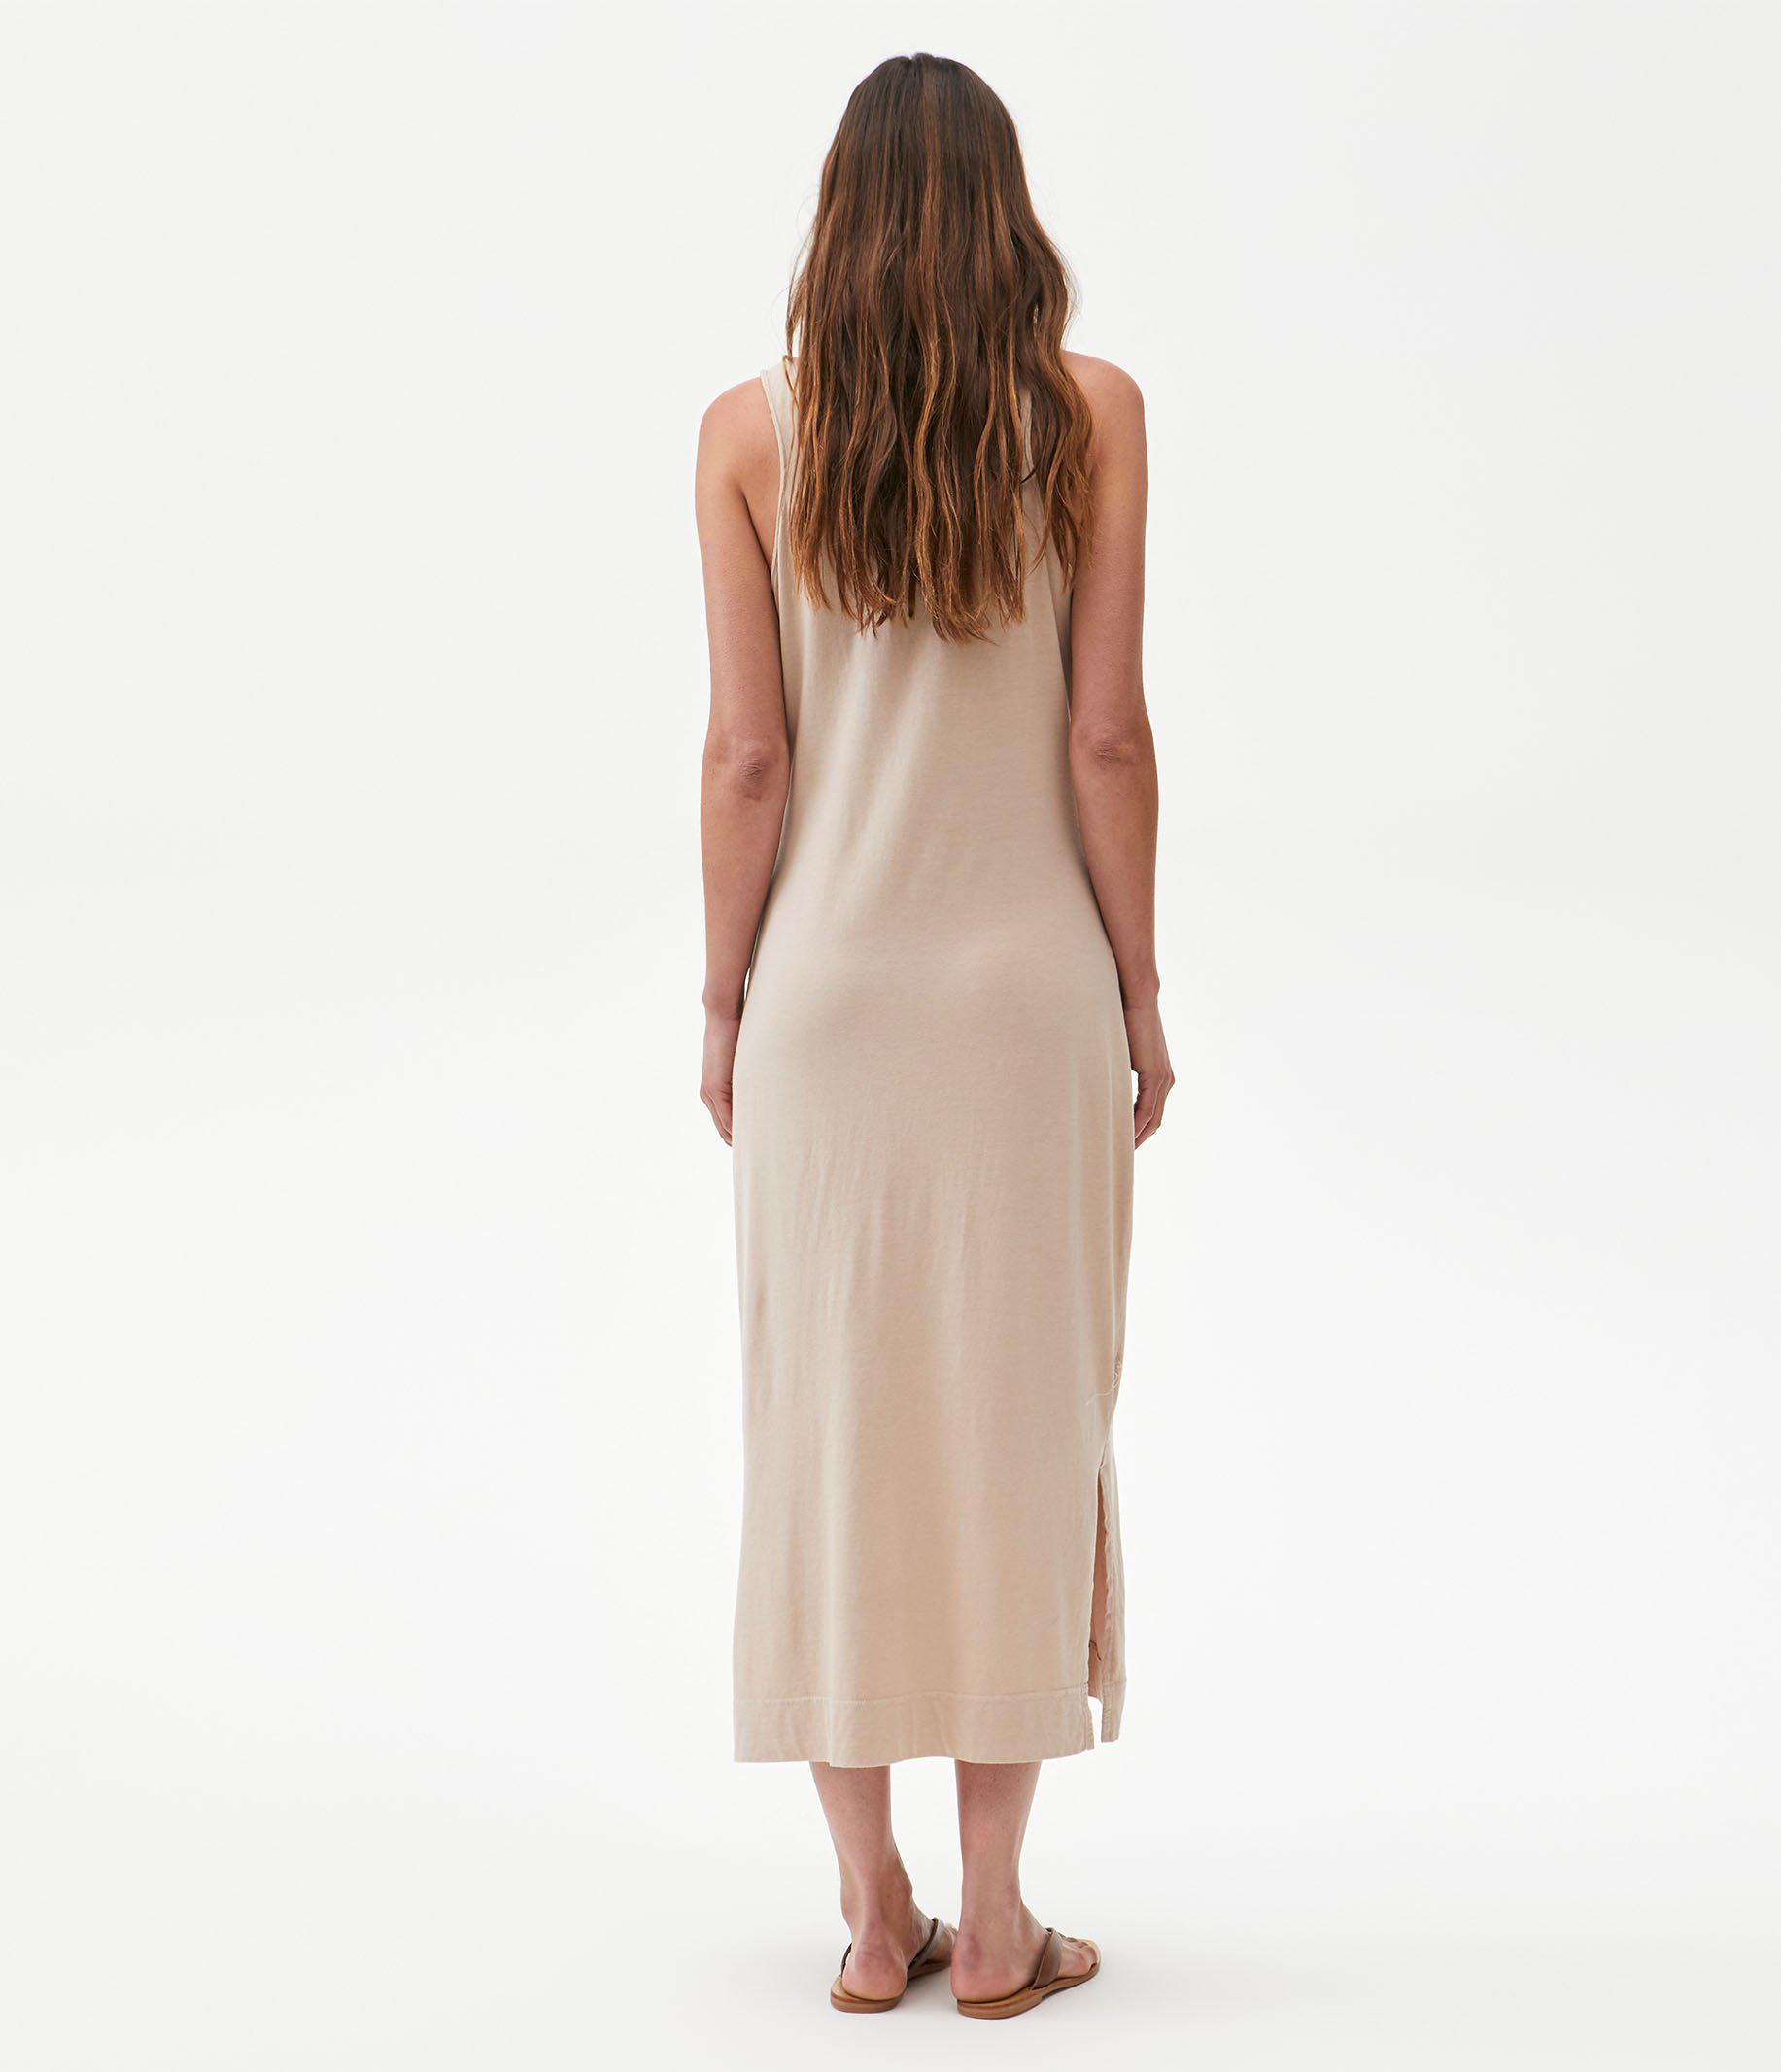 Cali Front-to-Back Dress 3